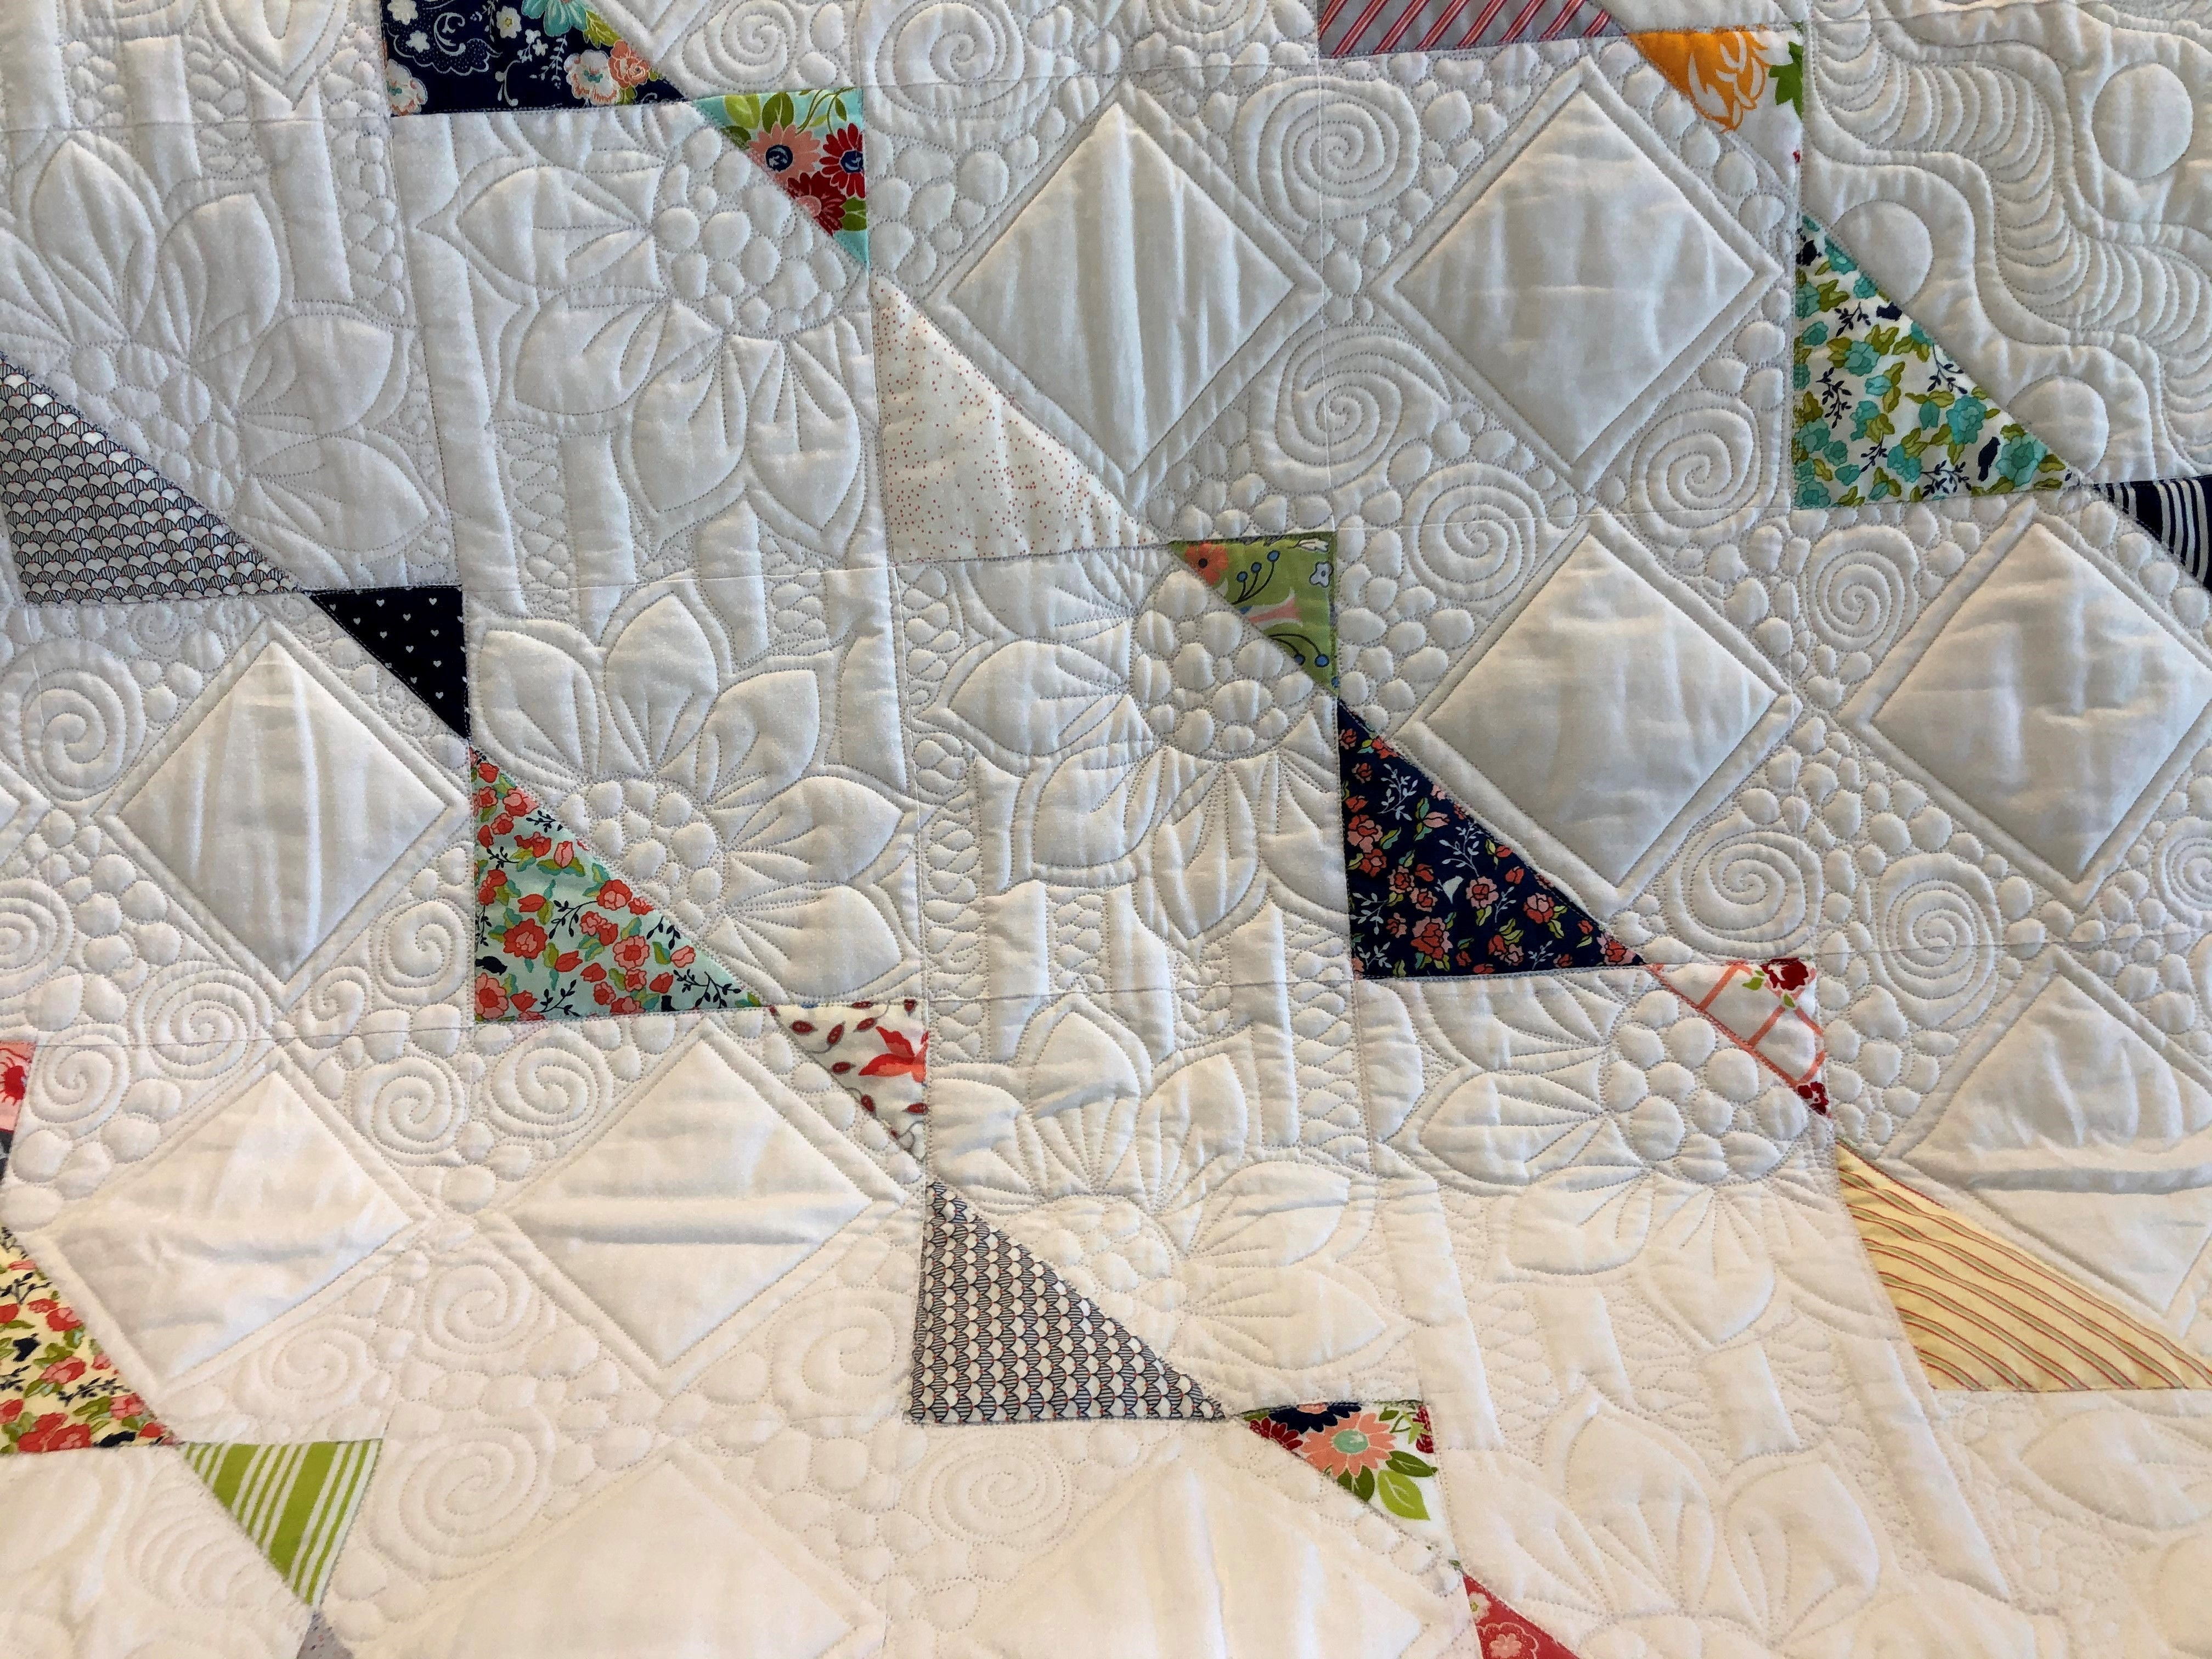 WAD.2,am - Rule the World! Quilting with Rulers - WORKSHOP